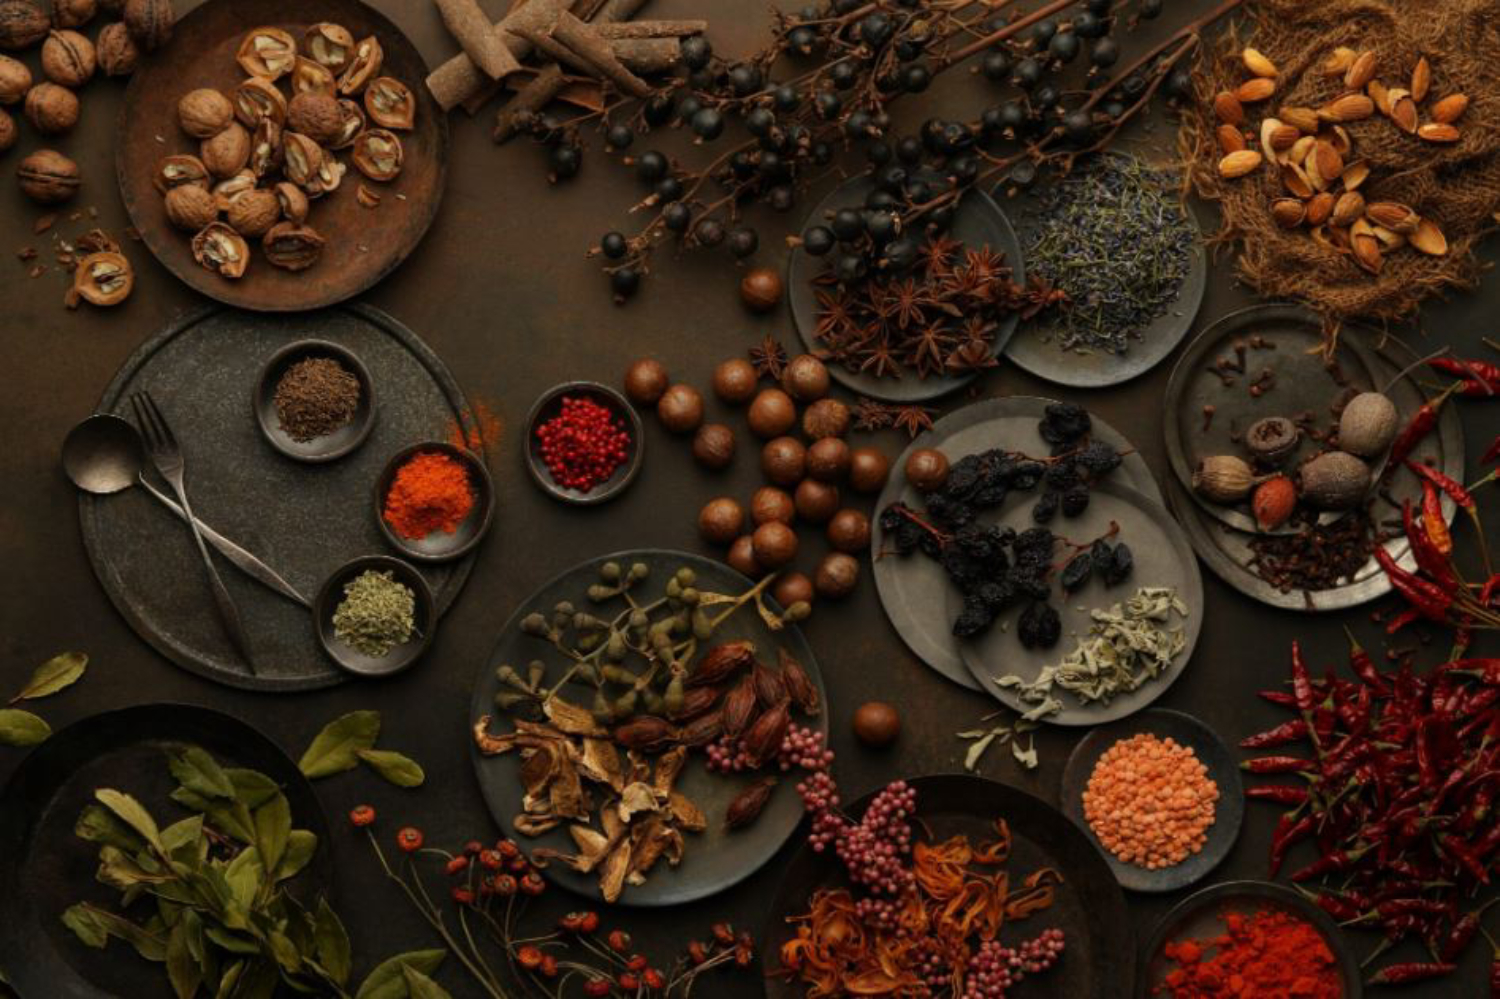 Plates & piles of assorted spices, nuts & other dry ingredients on a dark, earthy background, shot with Sony 85mm f1.4 GM lens